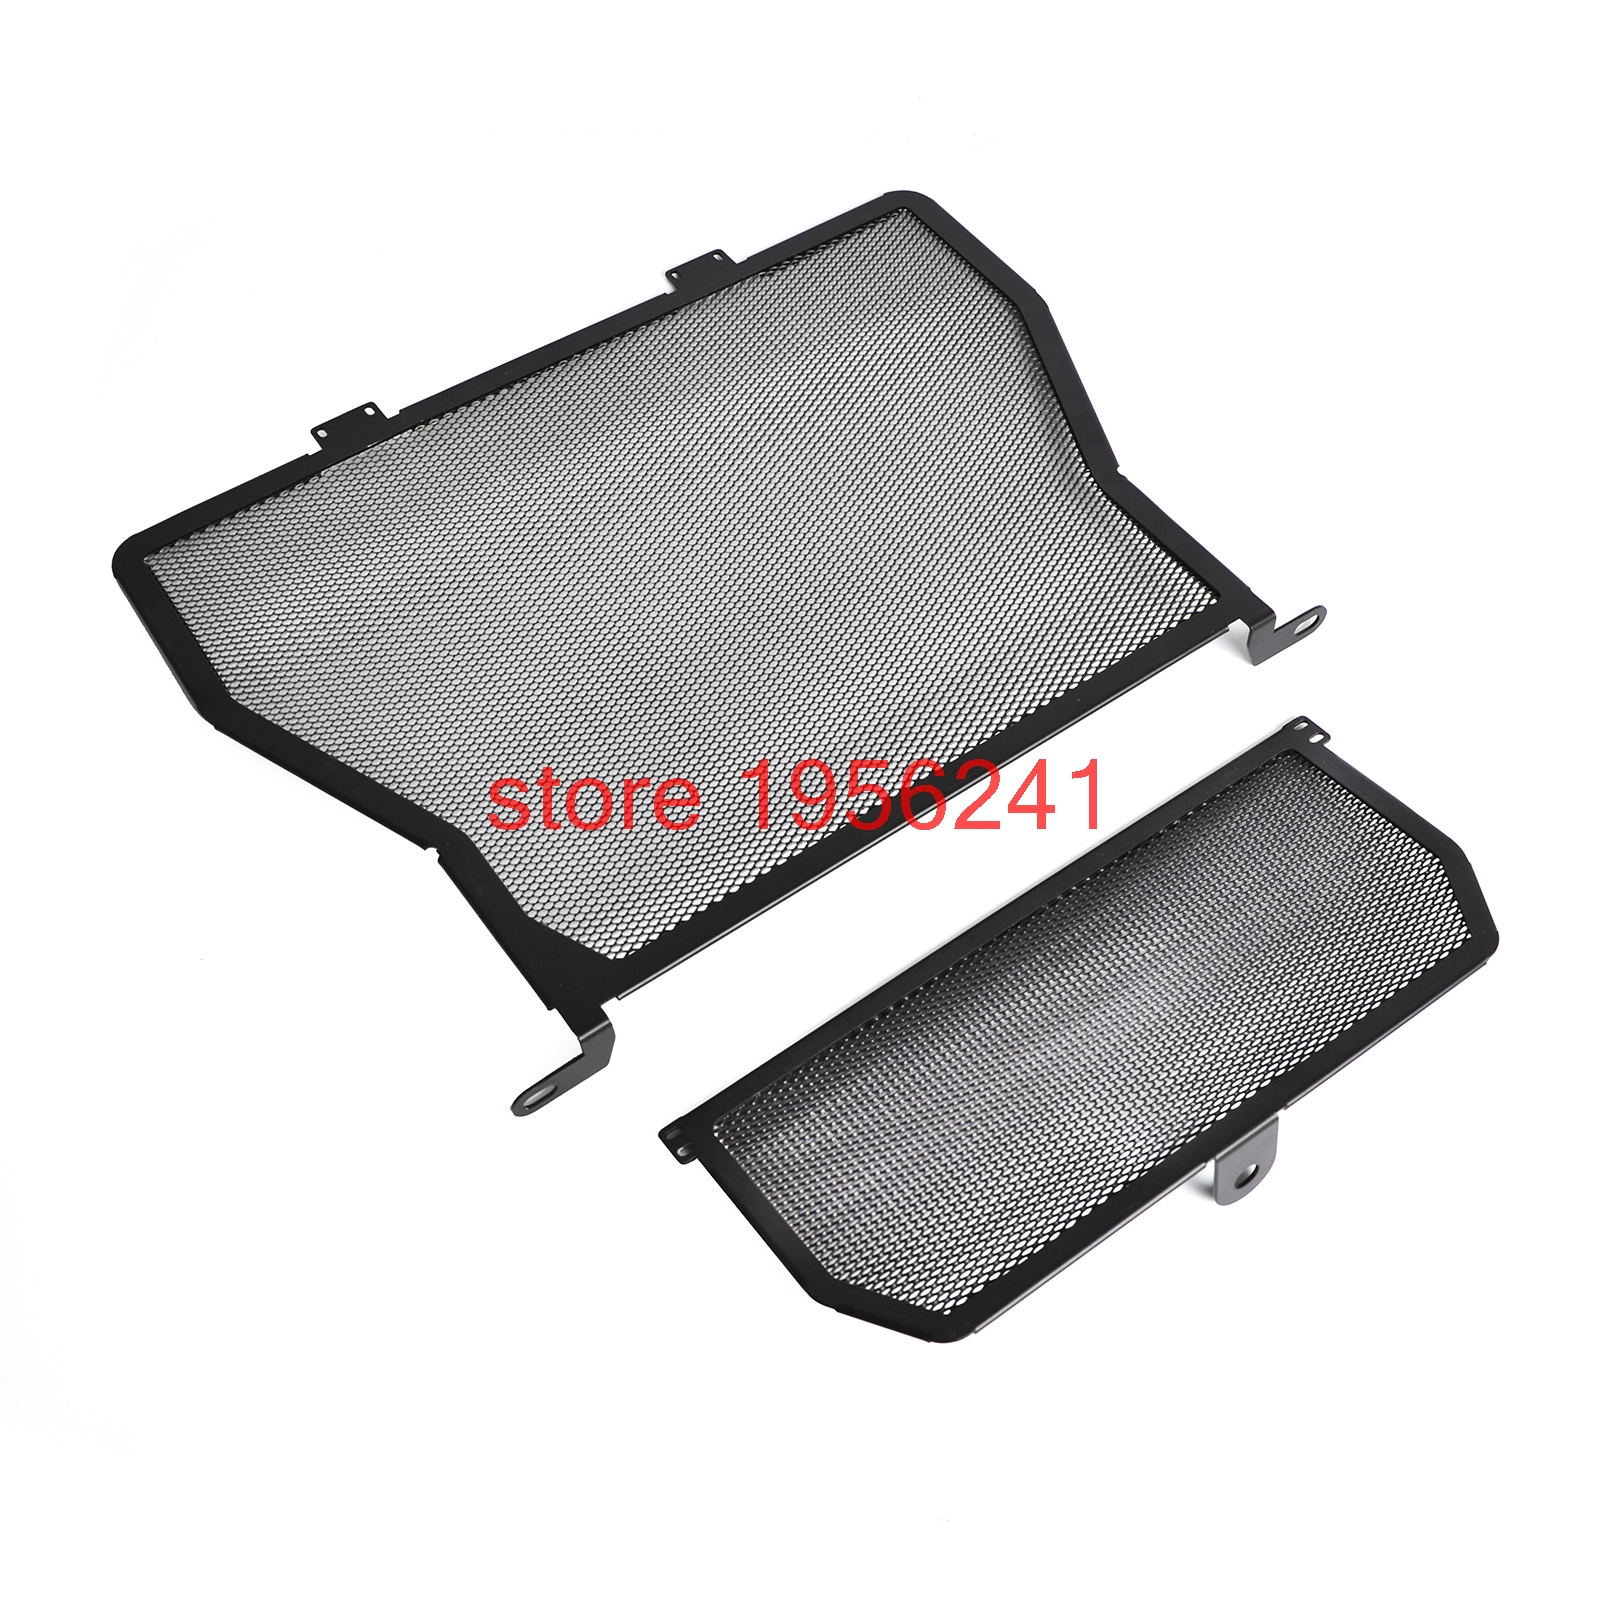 Radiator Grill Oil Cooler Cover Protector For BMW S1000R 2014-2017 S1000RR 2010-2017 S1000XR 2015 2016 2017 HP4 2012-2014 motorcycle radiator grill oil cooler guard cover protector for 2009 2010 2011 2012 2013 2014 2015 bmw s1000rr s1000 rr abs k46